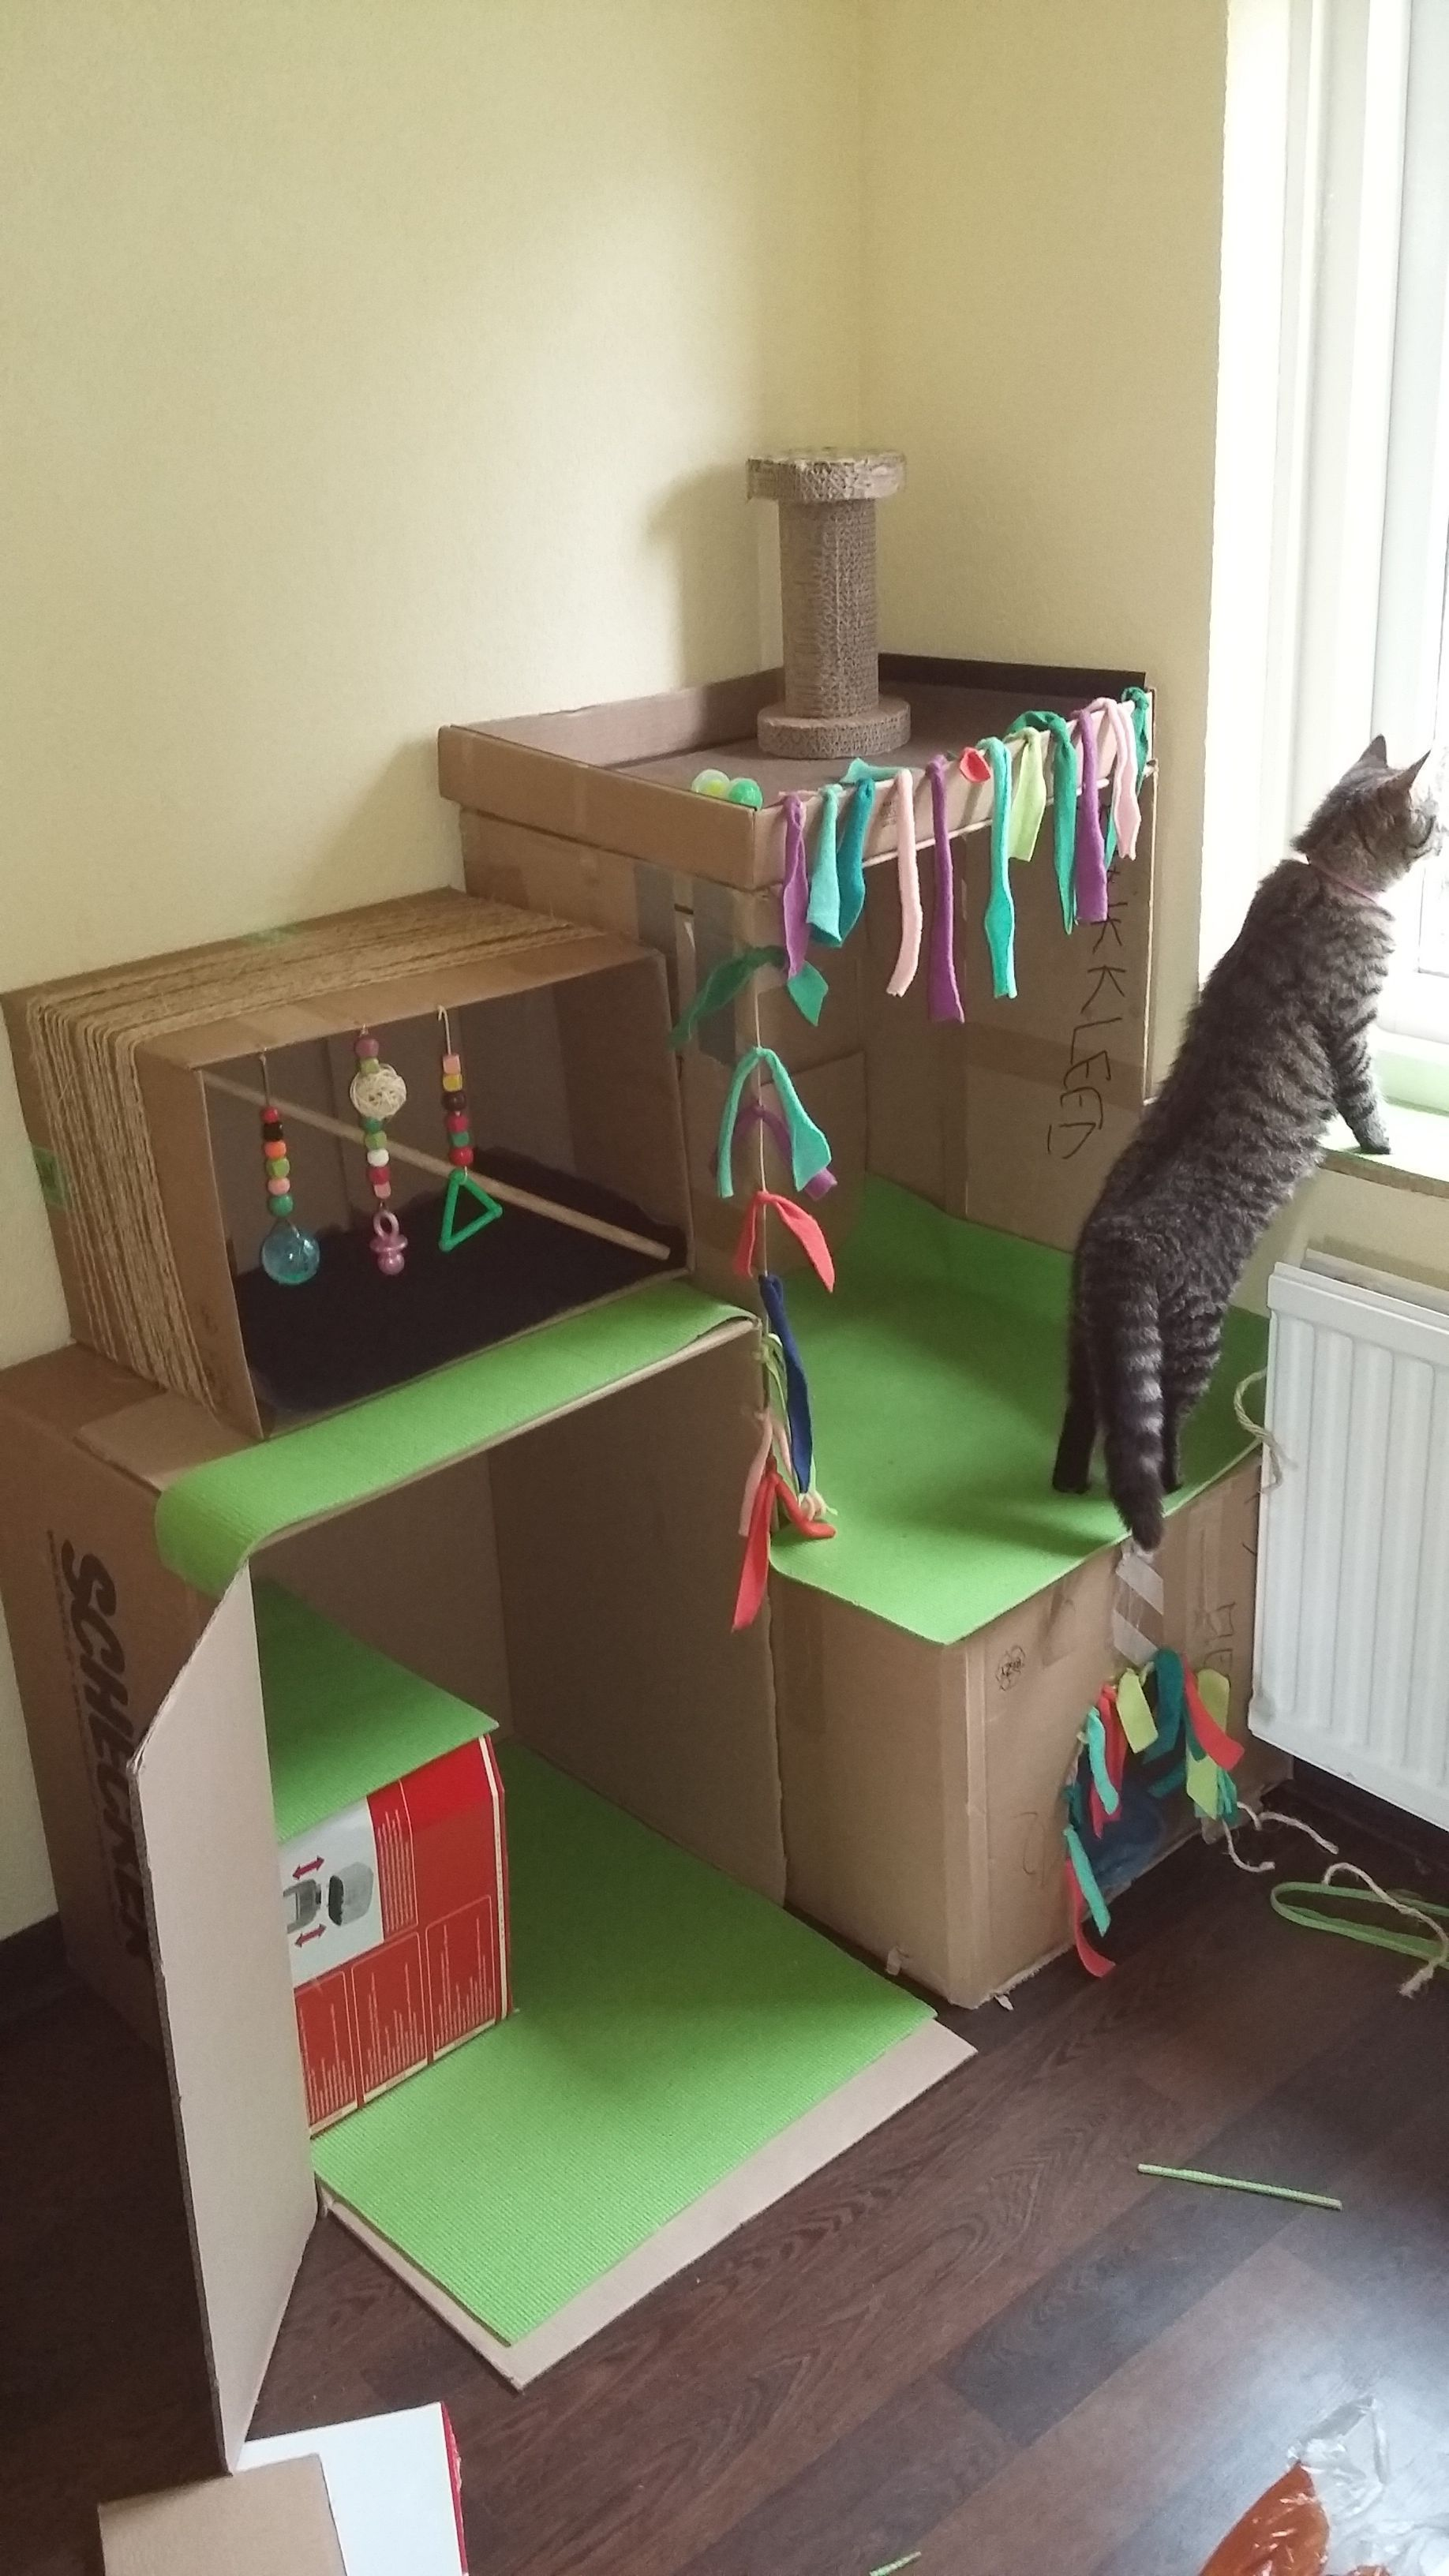 Diy Beautiful Cat House For Three Little Kittens Cardboard Cat House Cat House Diy Cat House